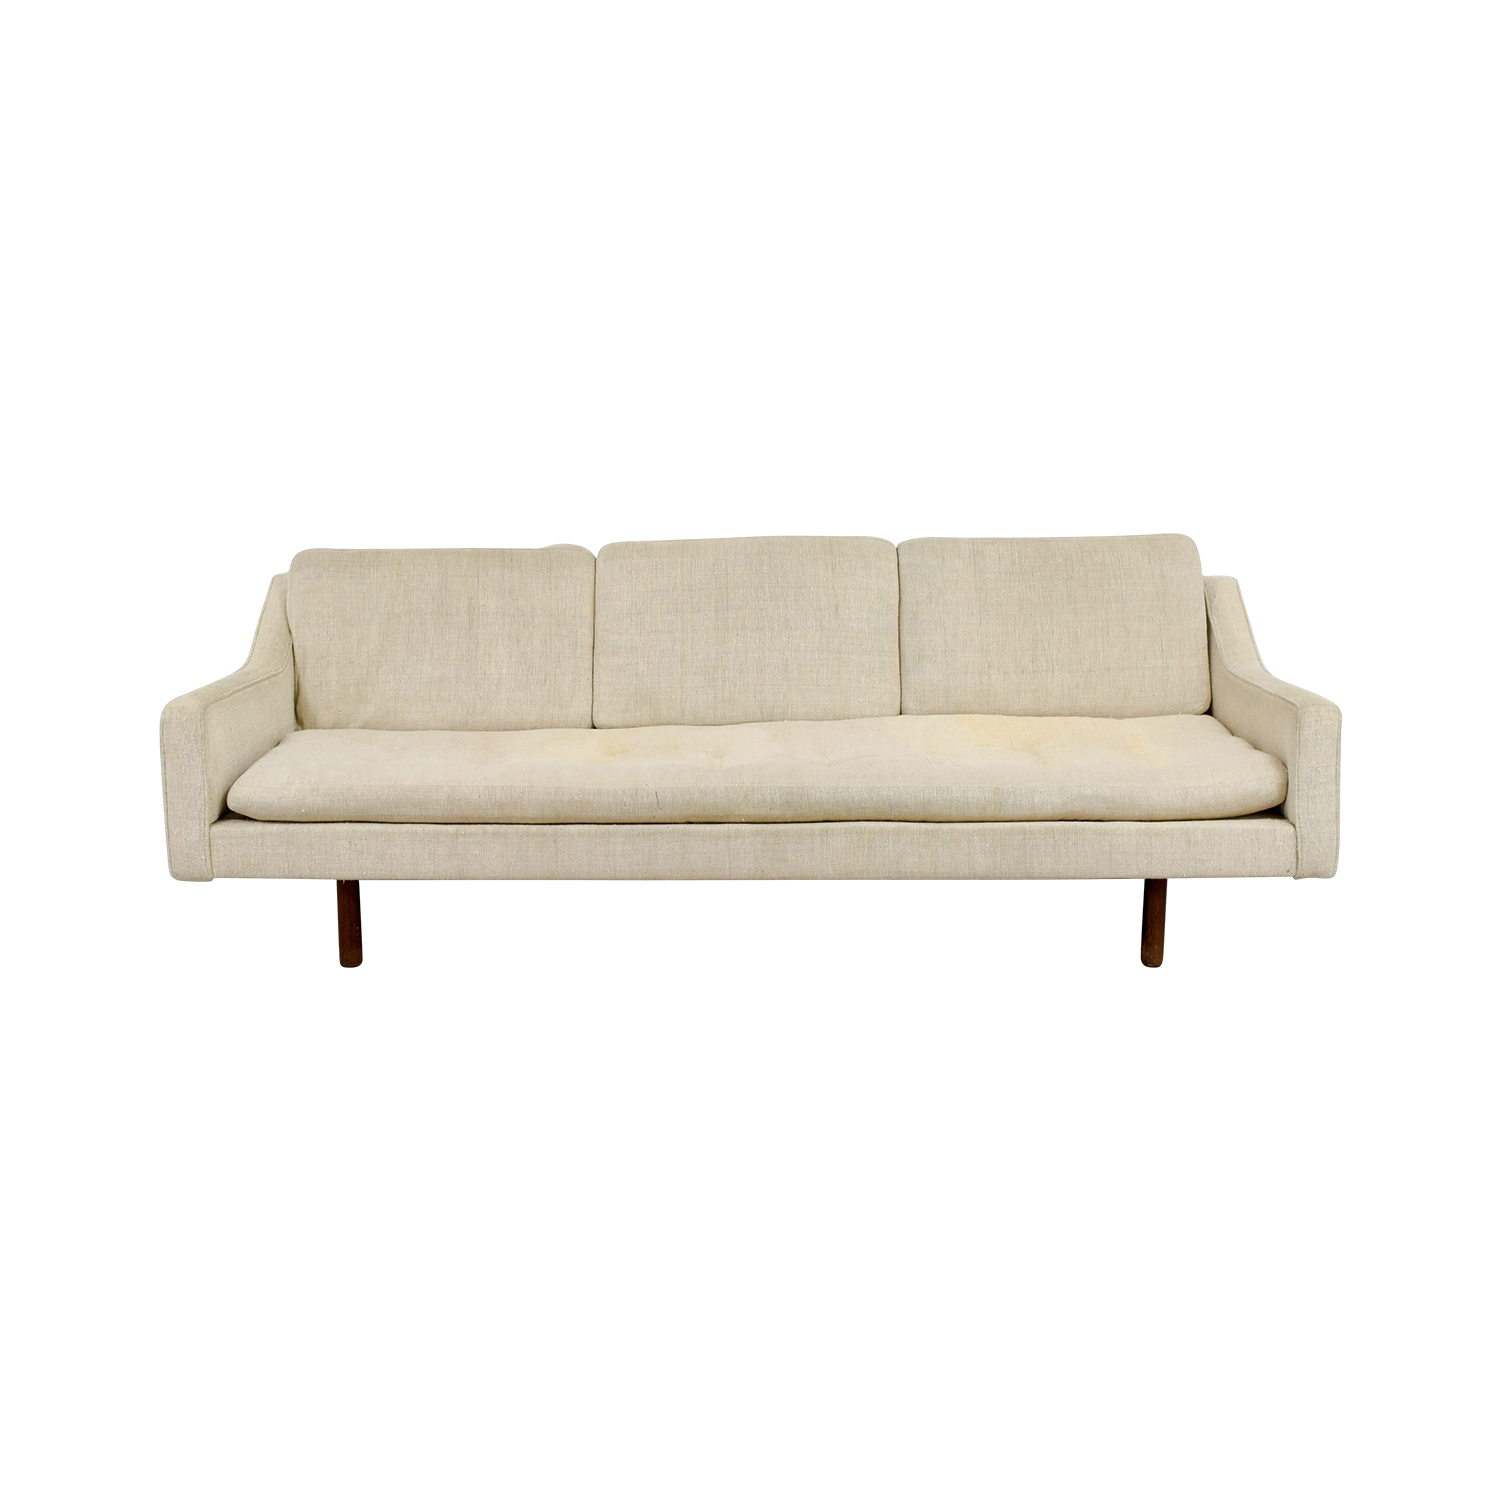 buy Vintage Mid-Century White Single Cushion Sofa